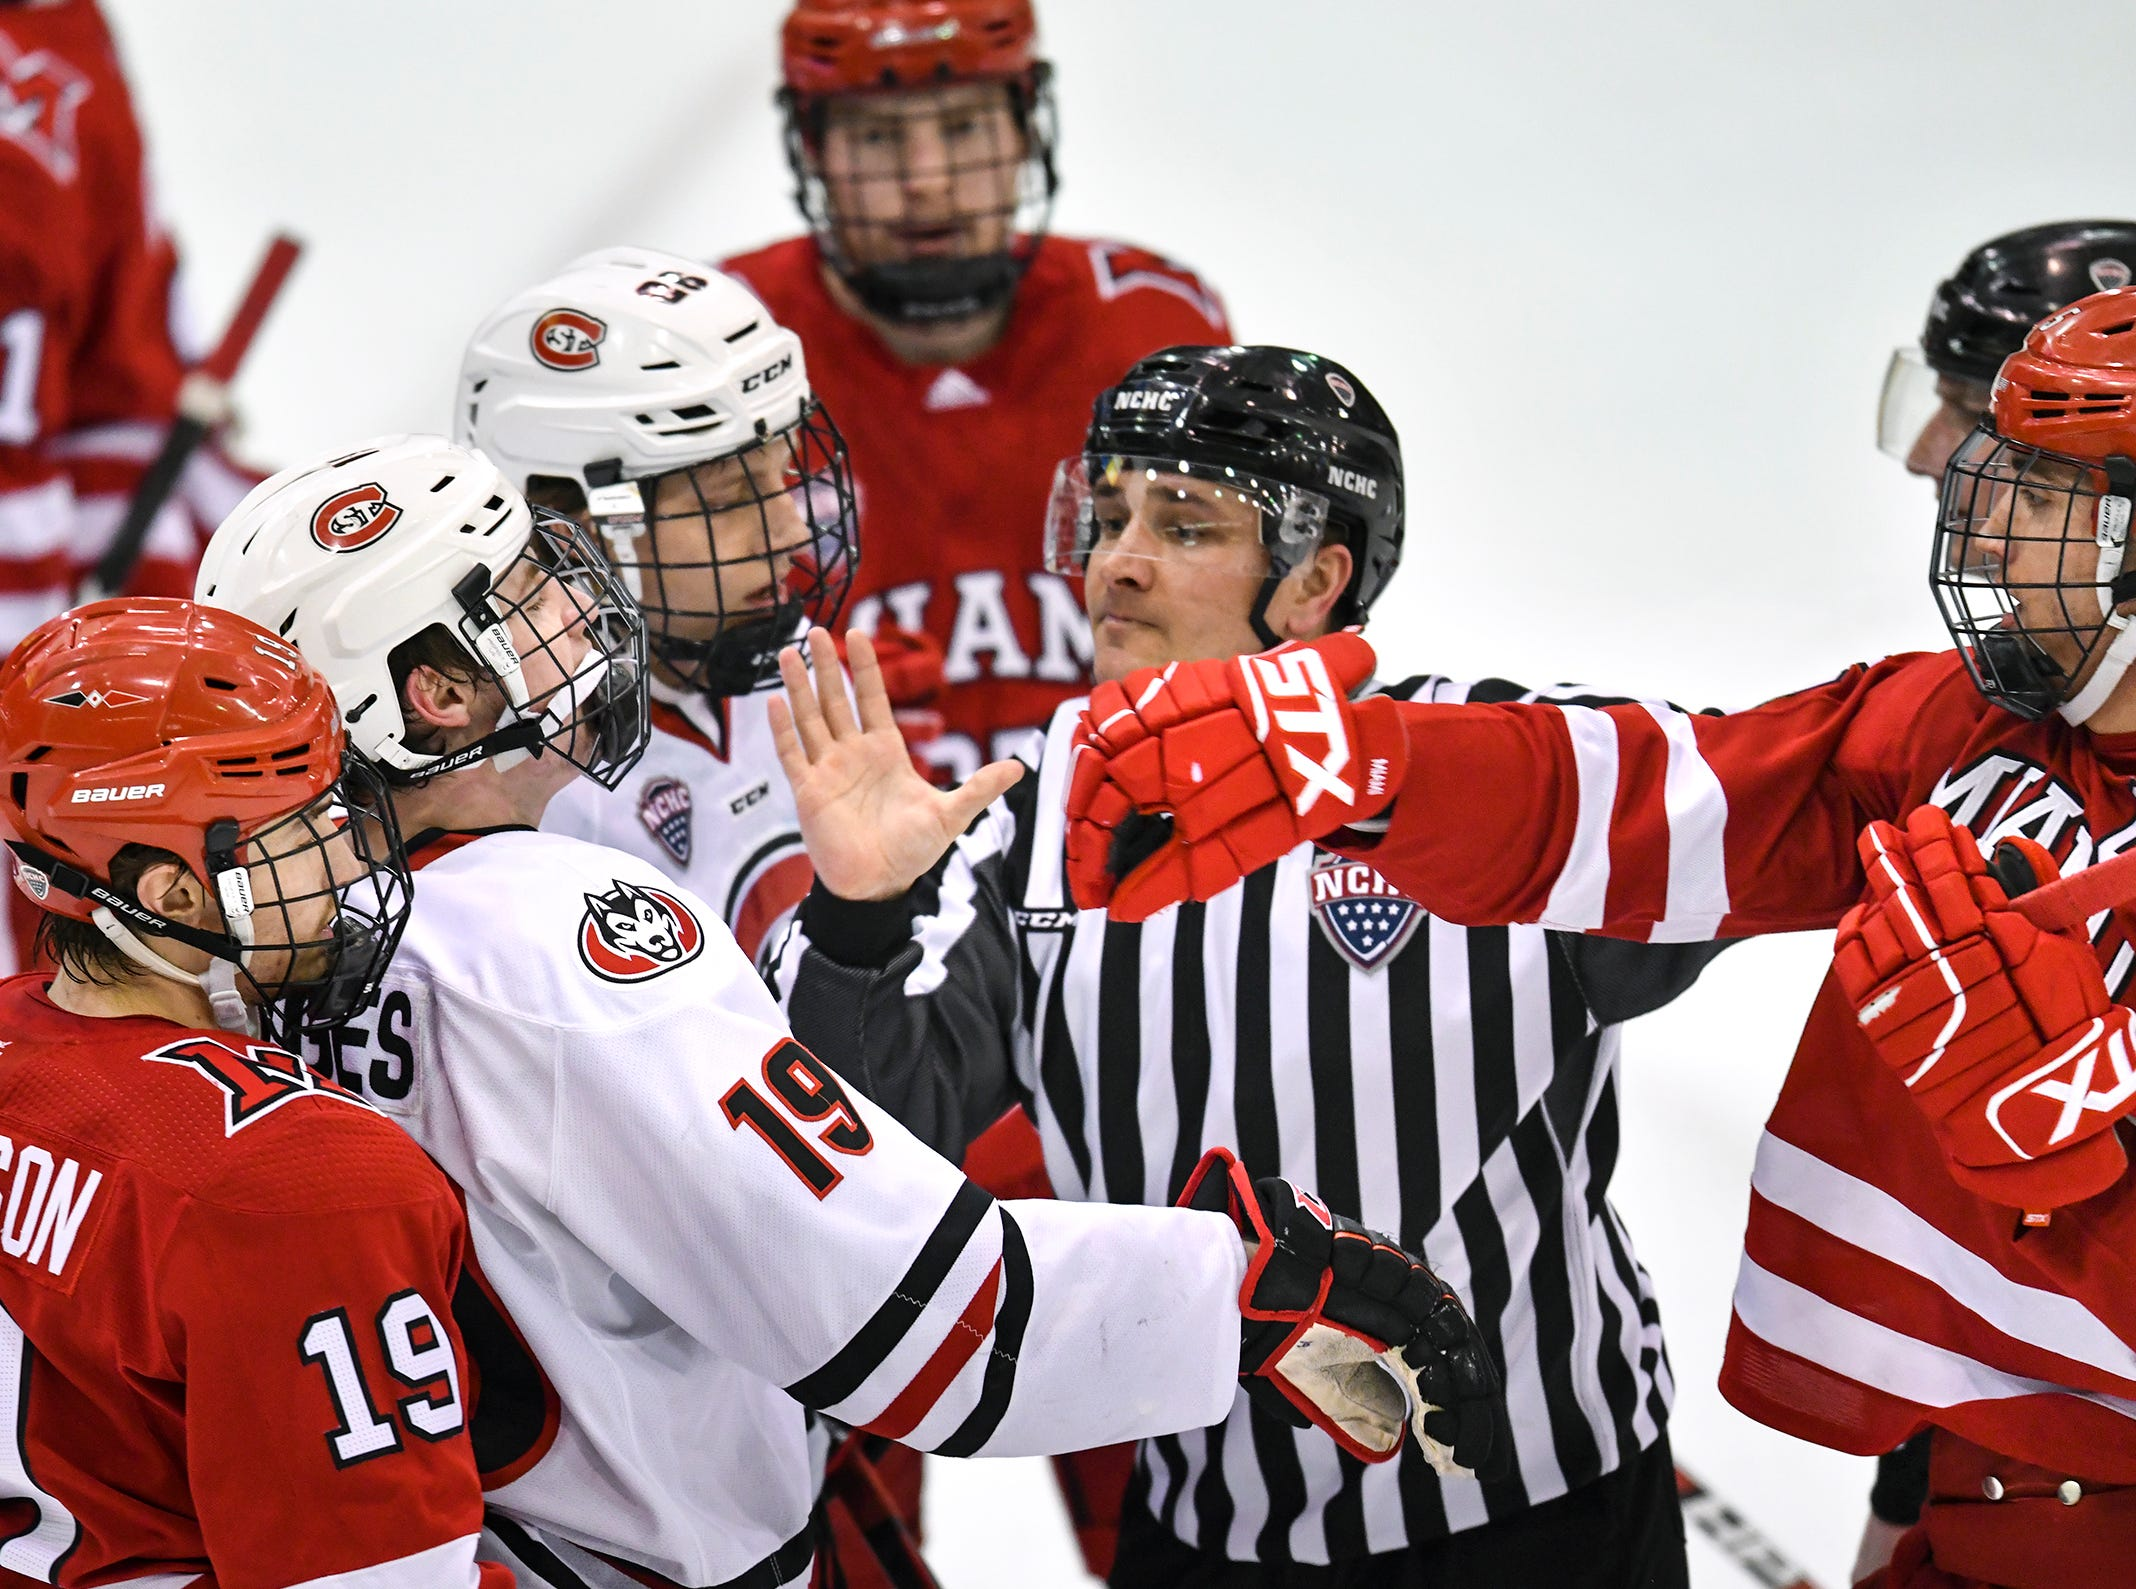 Players gather near the Miami goal during the first period of the Saturday, March 16 game at the Herb Brooks National Hockey Center in St. Cloud.